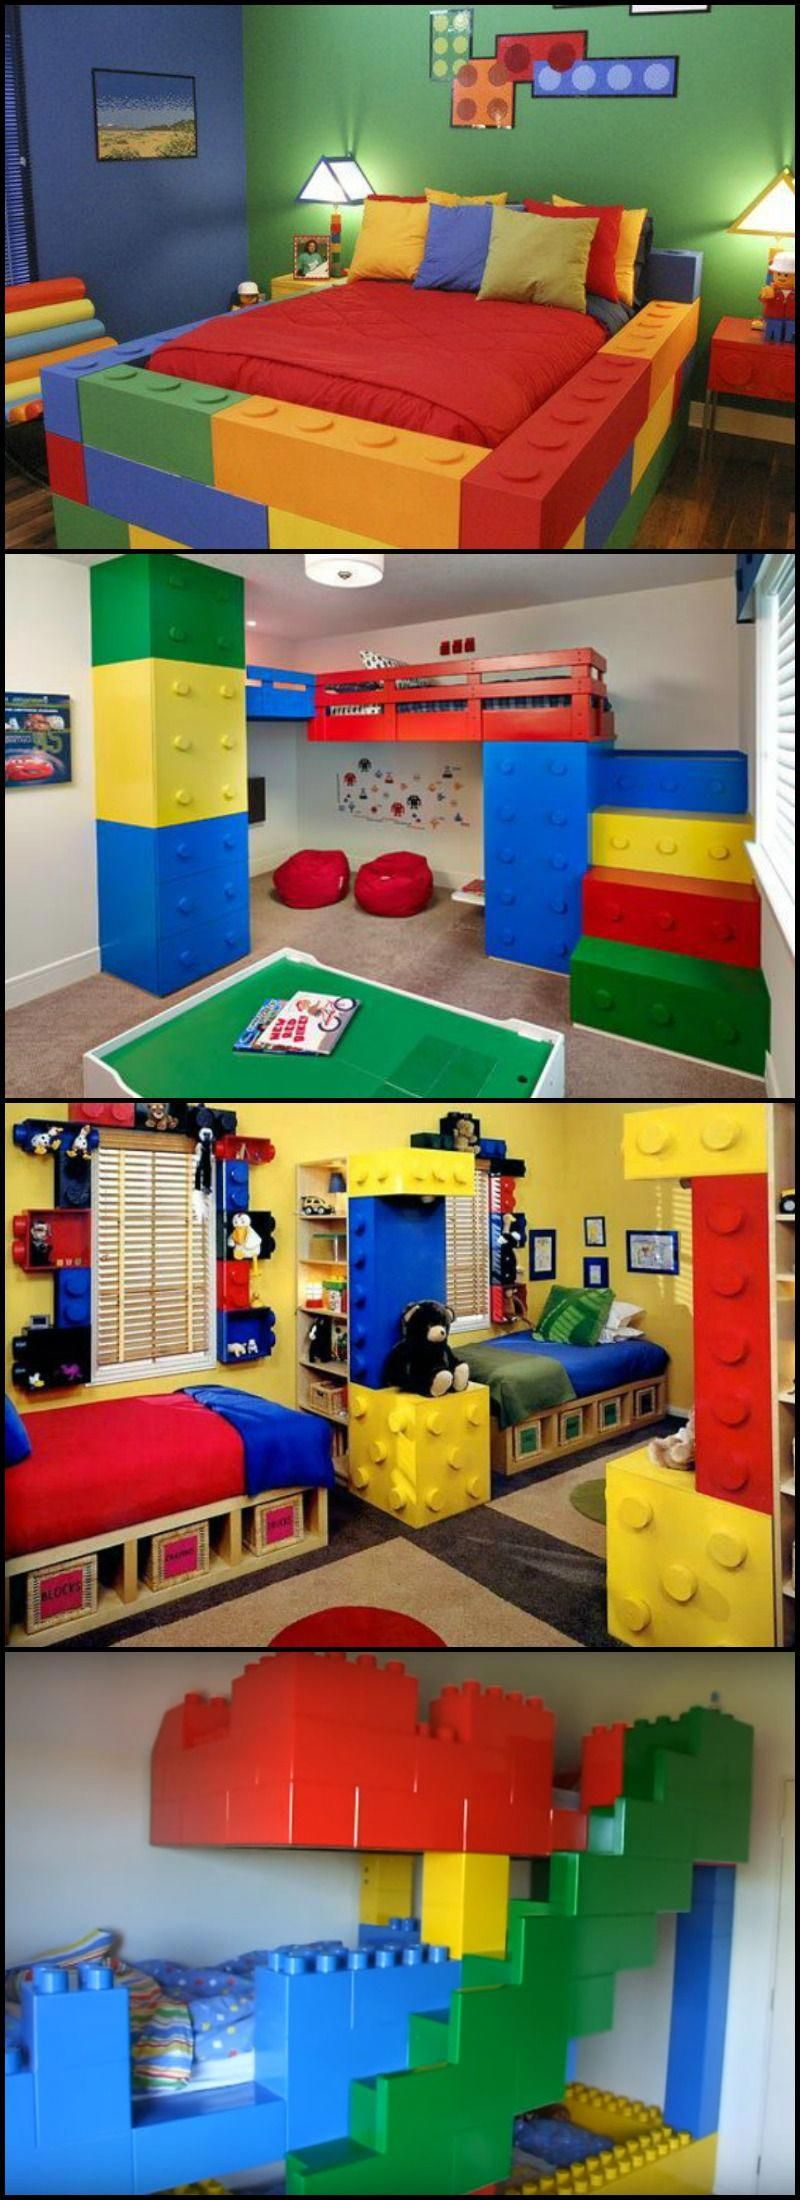 Lego-themed bedroom ideas images